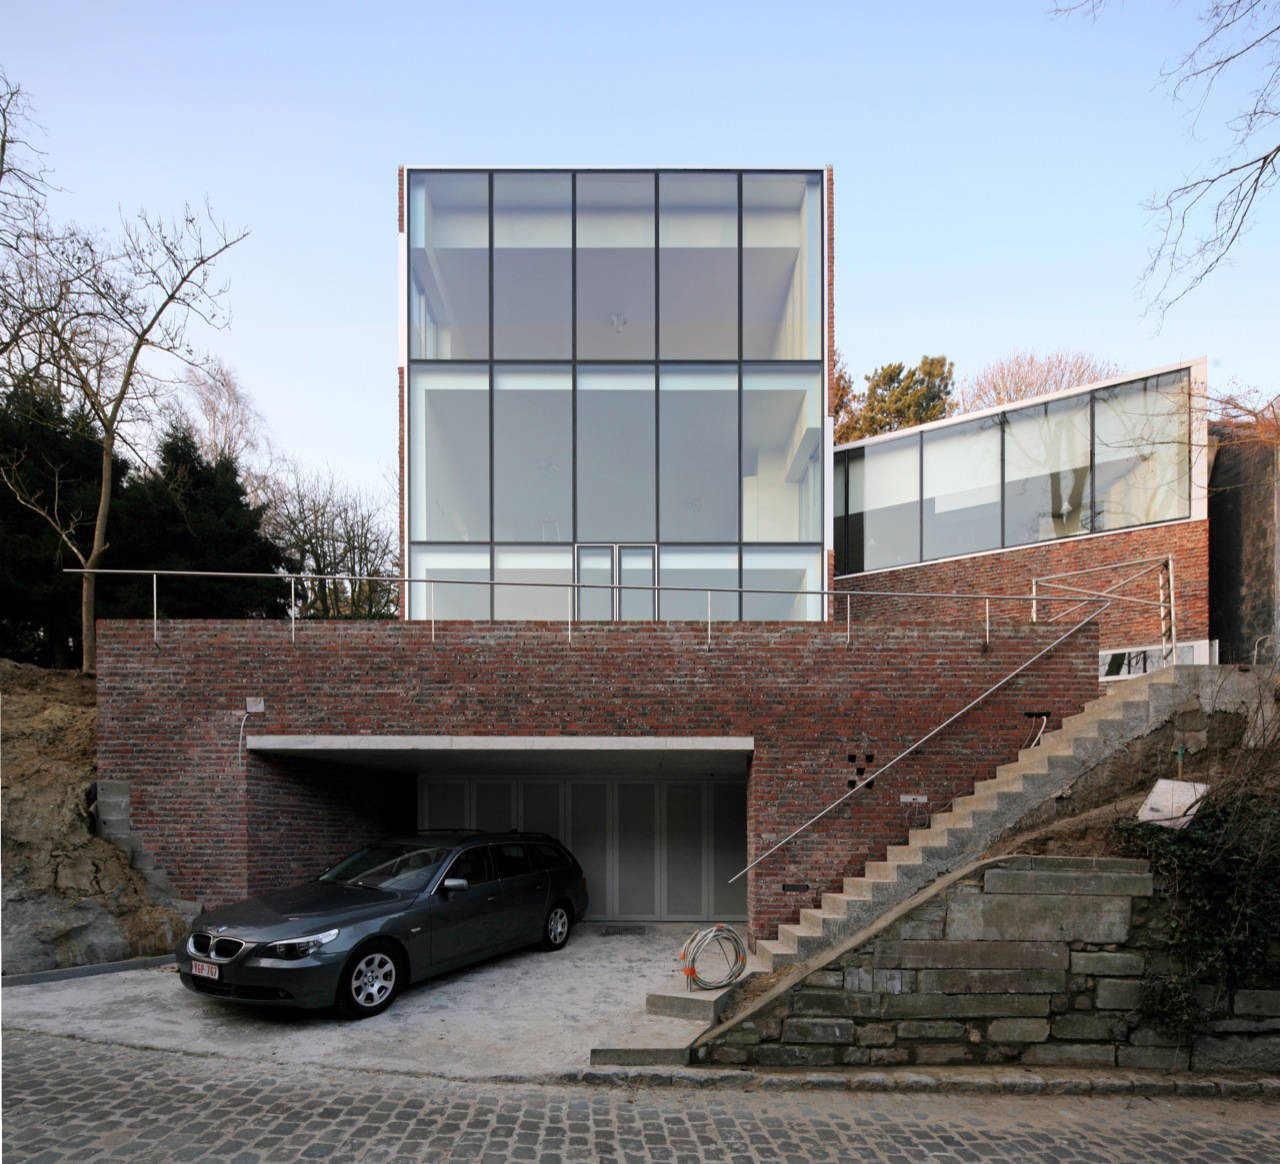 Stine-Gybels House / Pierre Hebbelinck, Courtesy of  pierre hebbelinck